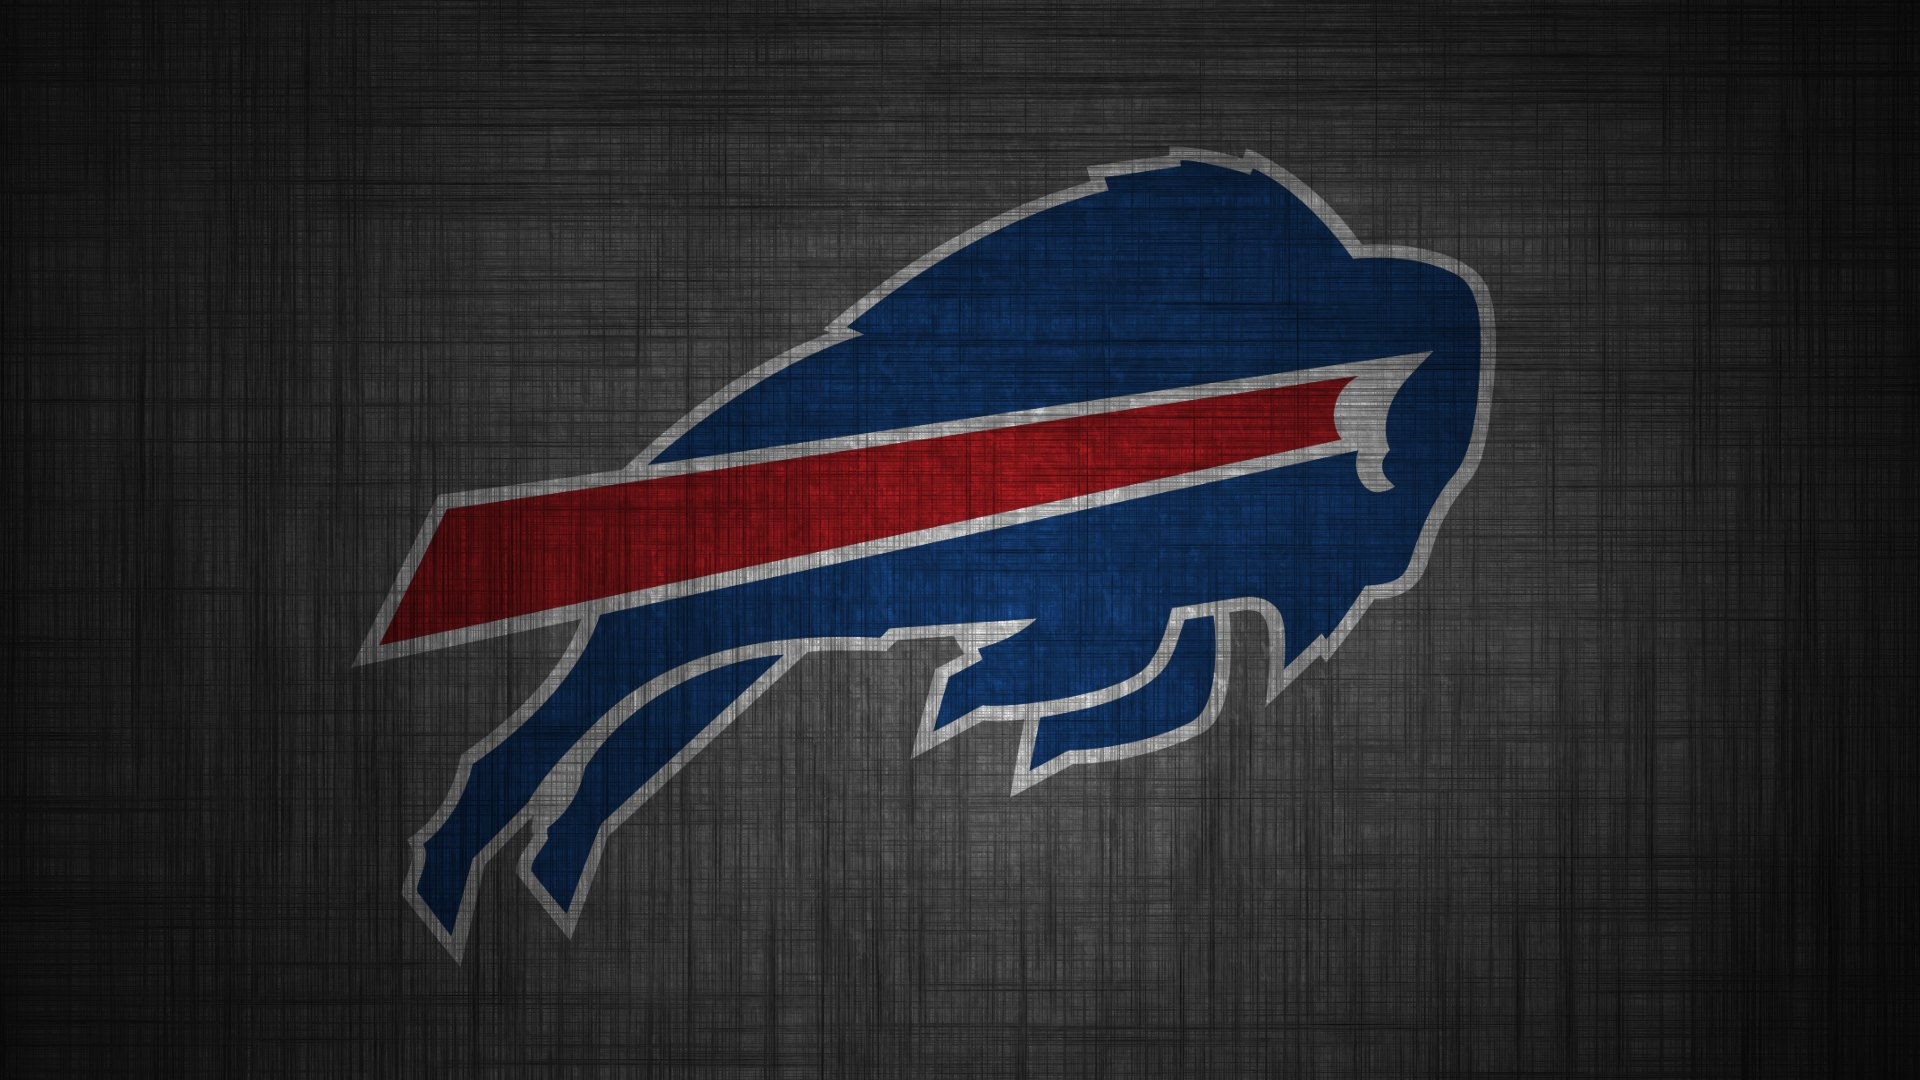 Amazing Computer Wallpapers Quotes Buffalo Bills Wallpapers Hd Pixelstalk Net